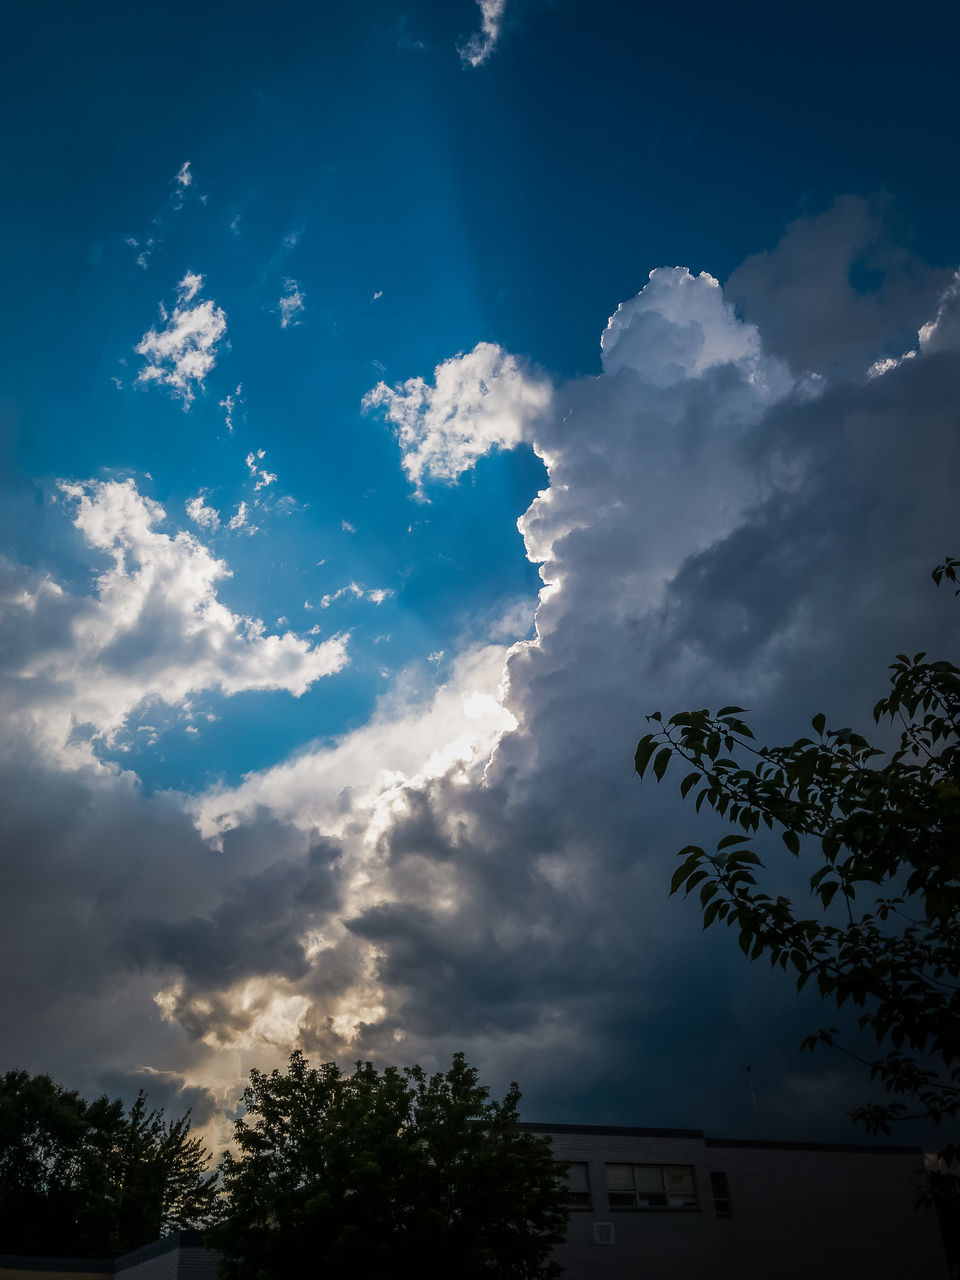 sky, cloud - sky, tree, low angle view, nature, beauty in nature, no people, silhouette, outdoors, scenics, day